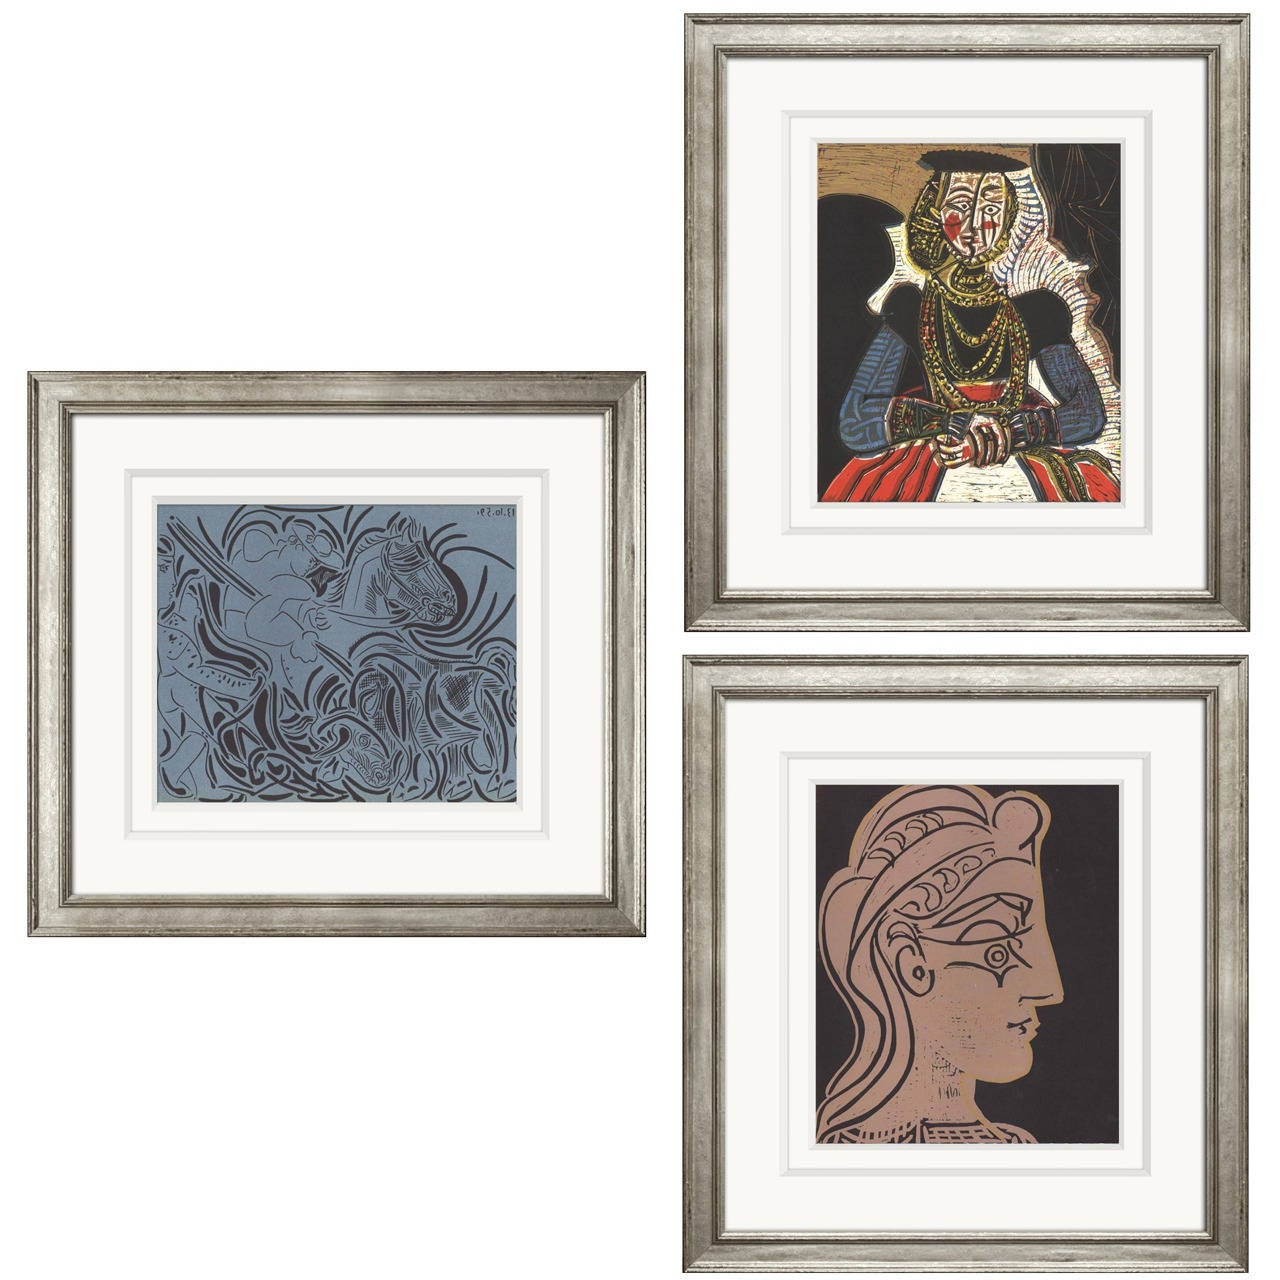 Reproductions of Picasso's 1962 Linocuts 1